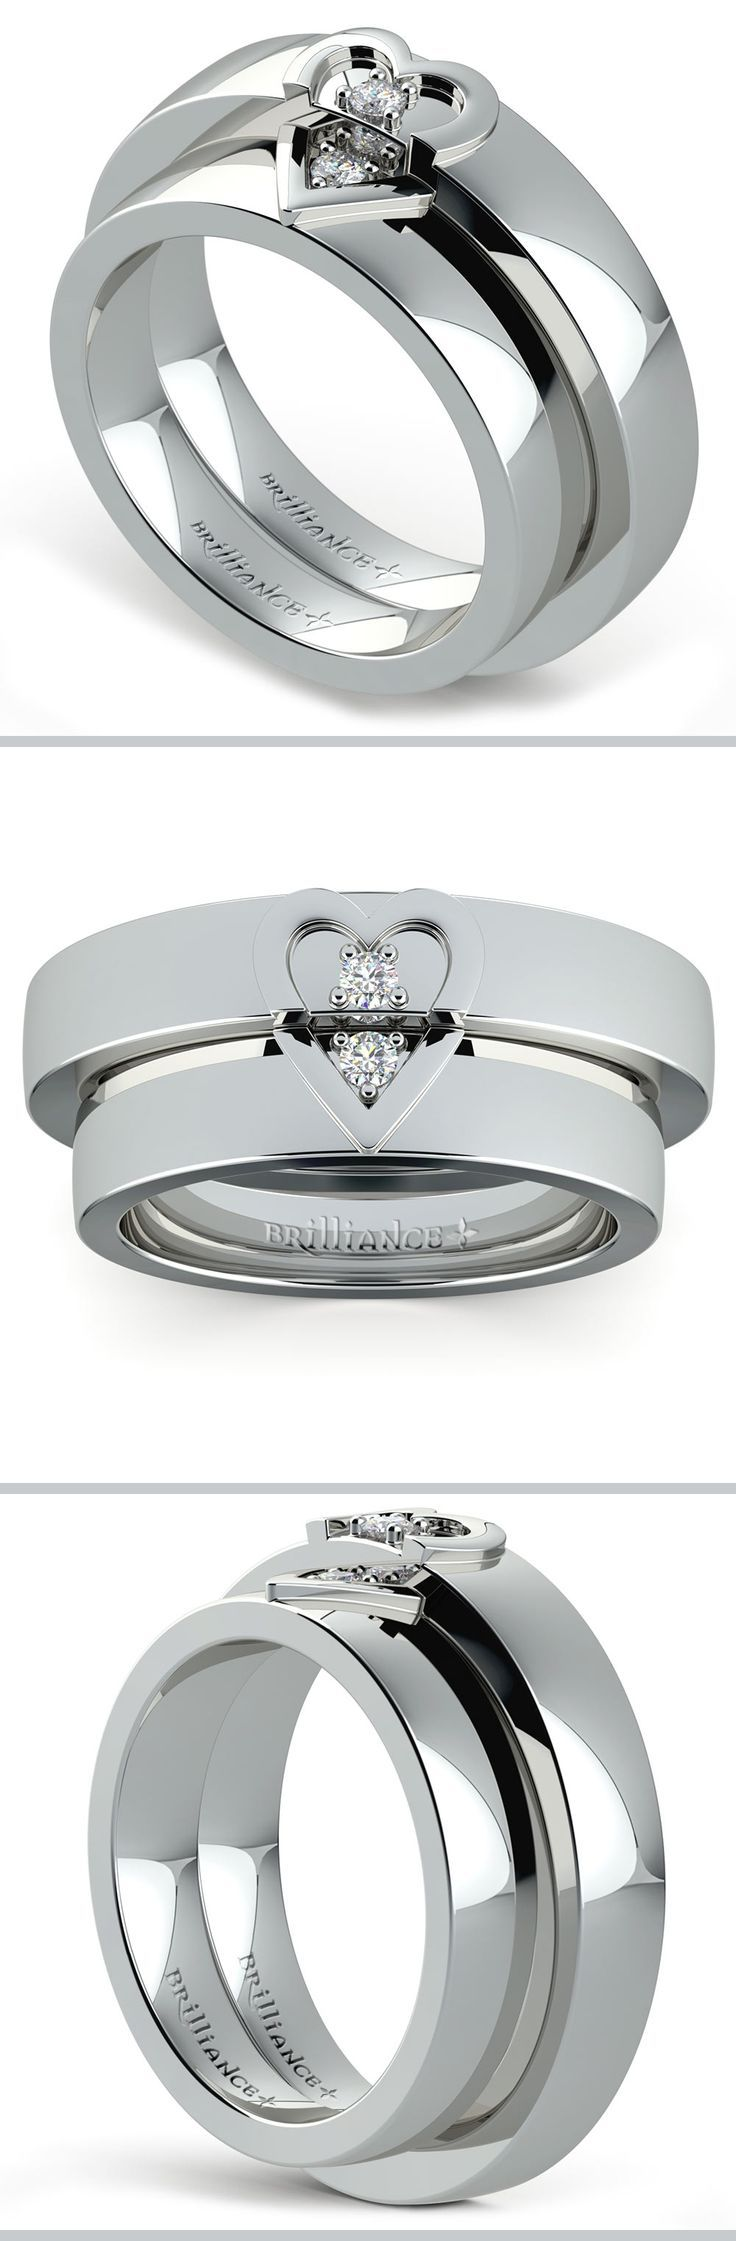 Matching His And Hers 5 Mm Wedding Bands In Platinum Feature A Split Heart  Puzzle Detail Wedding Ring Setdiamond